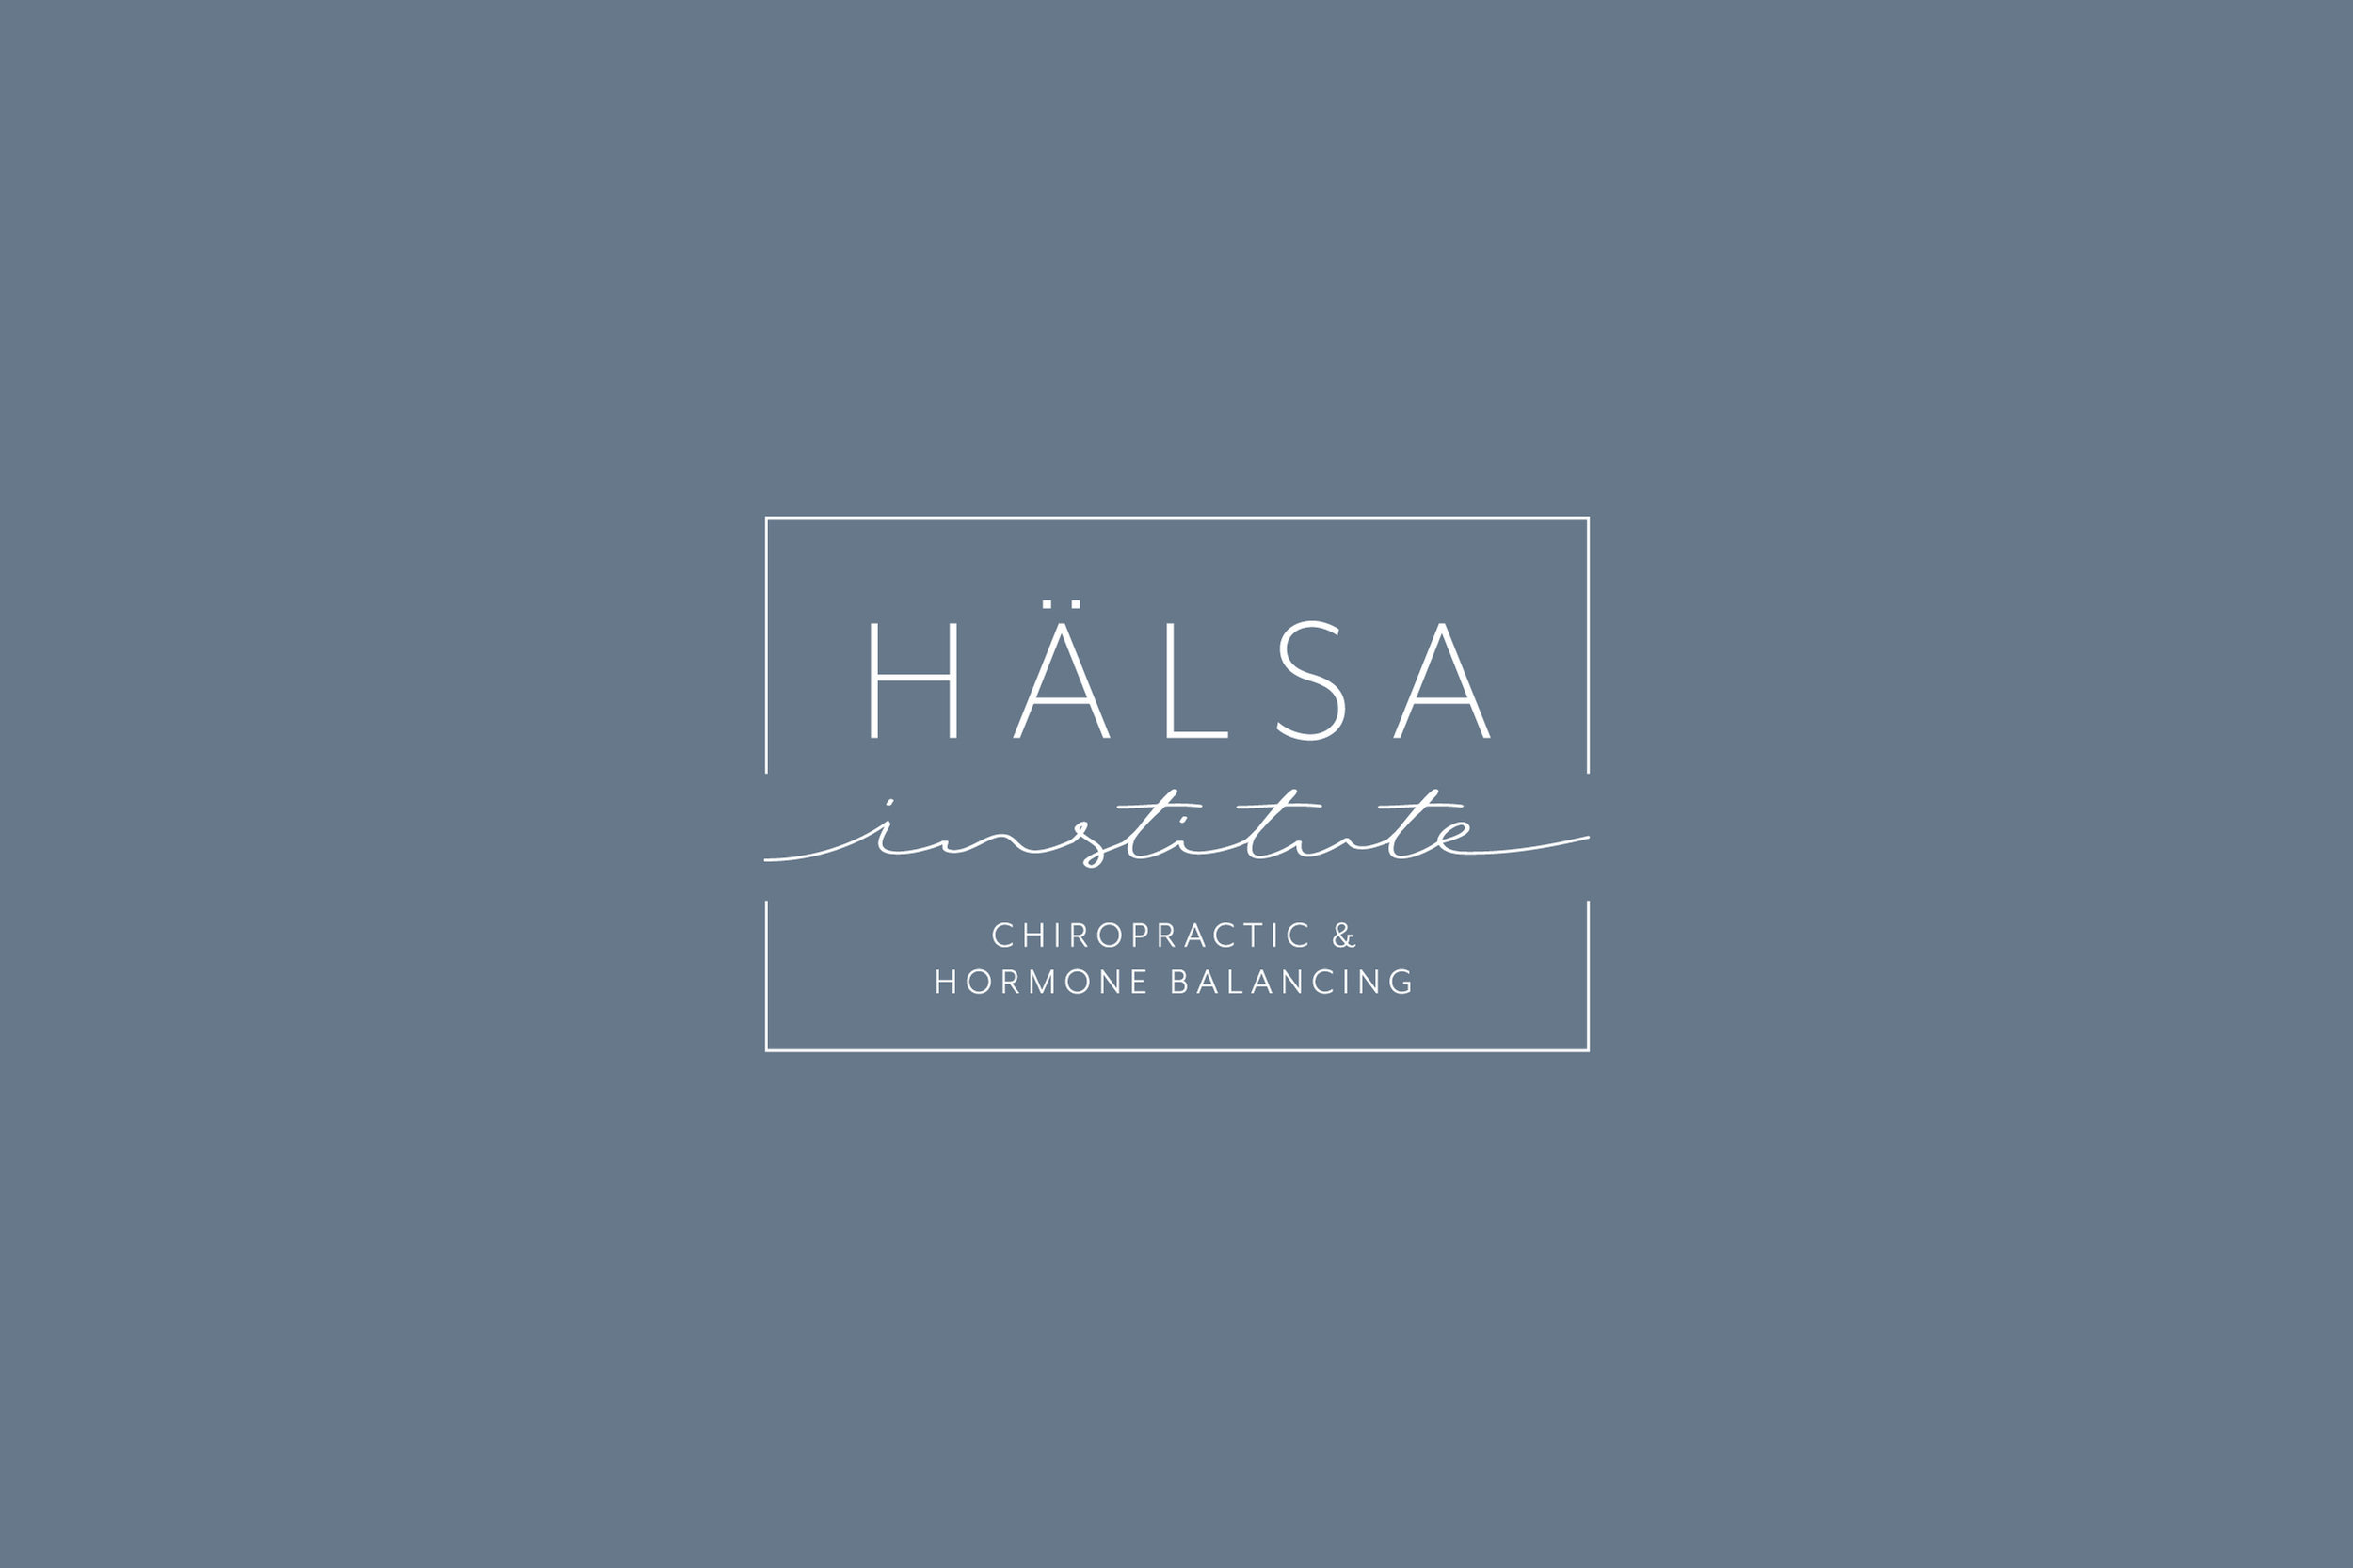 branding & website: Halsa Institute